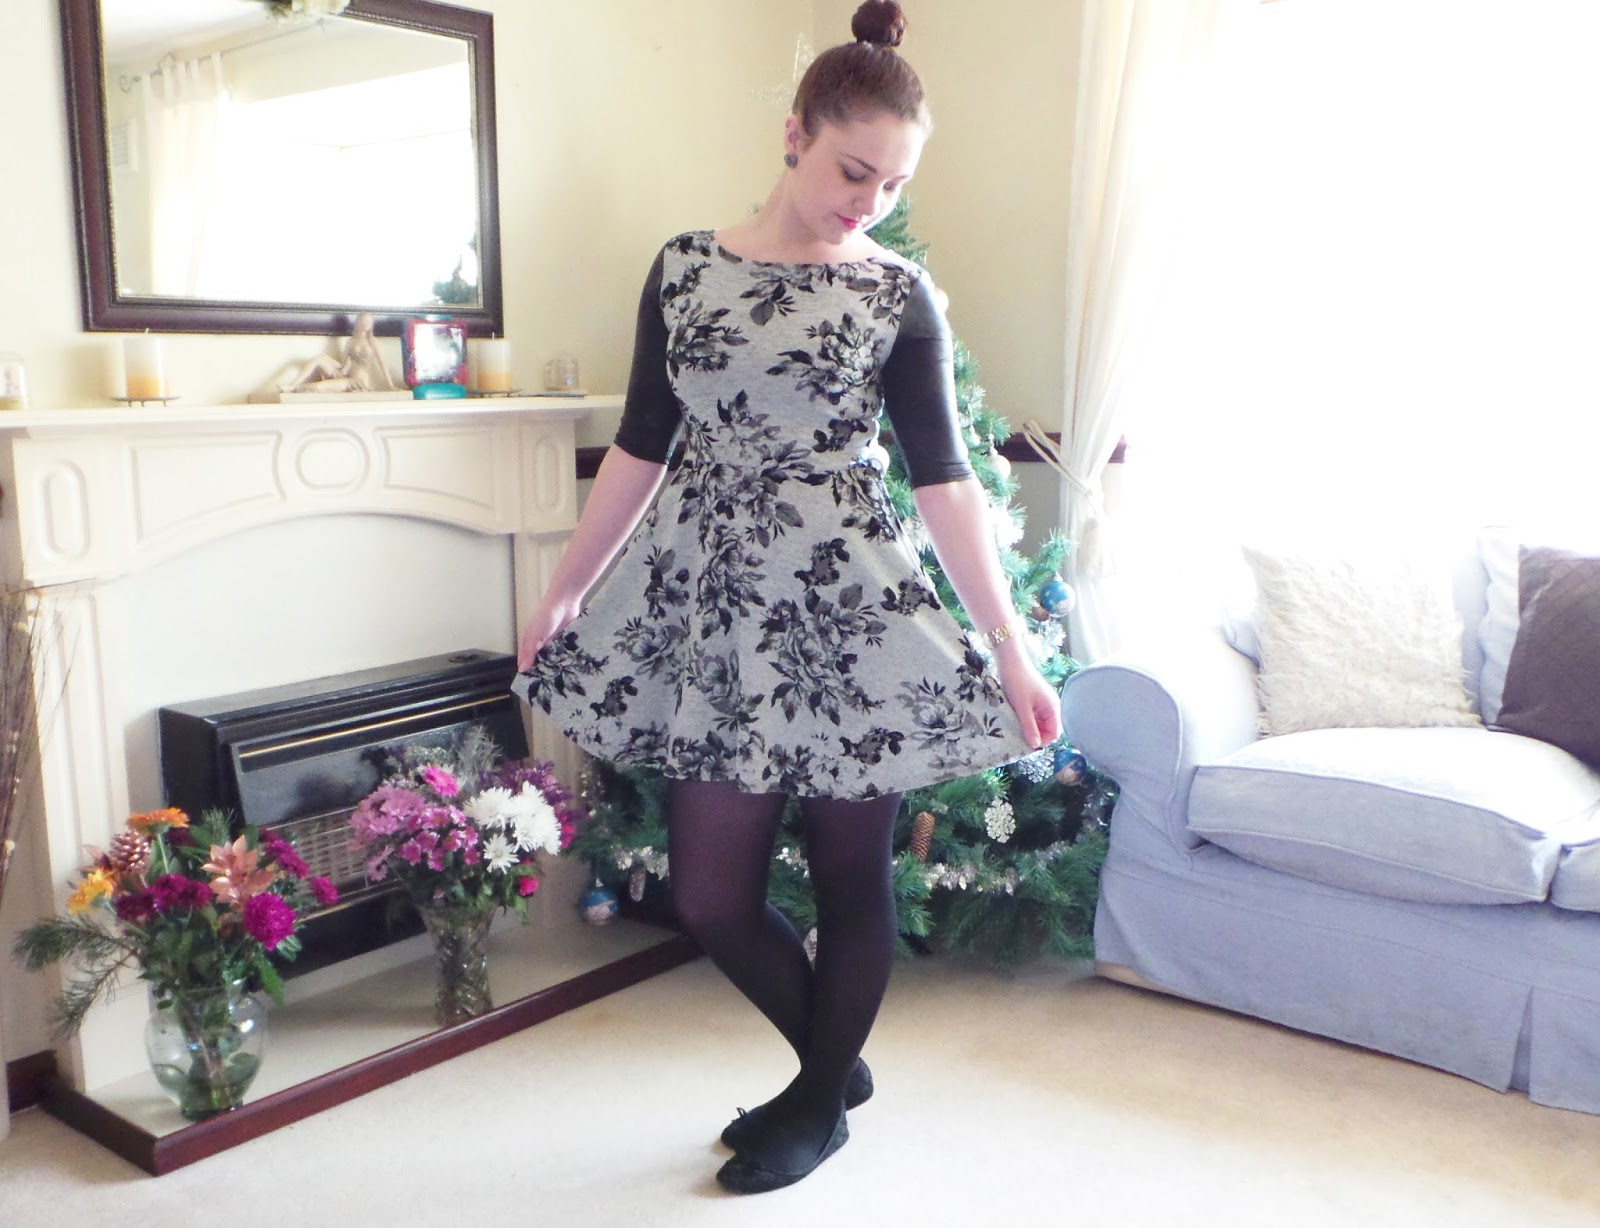 OOTD Blog Post, Fashion - Floral Skater Dress, Primark Dress, Primark £5 Dress, Leather Look Sleeves